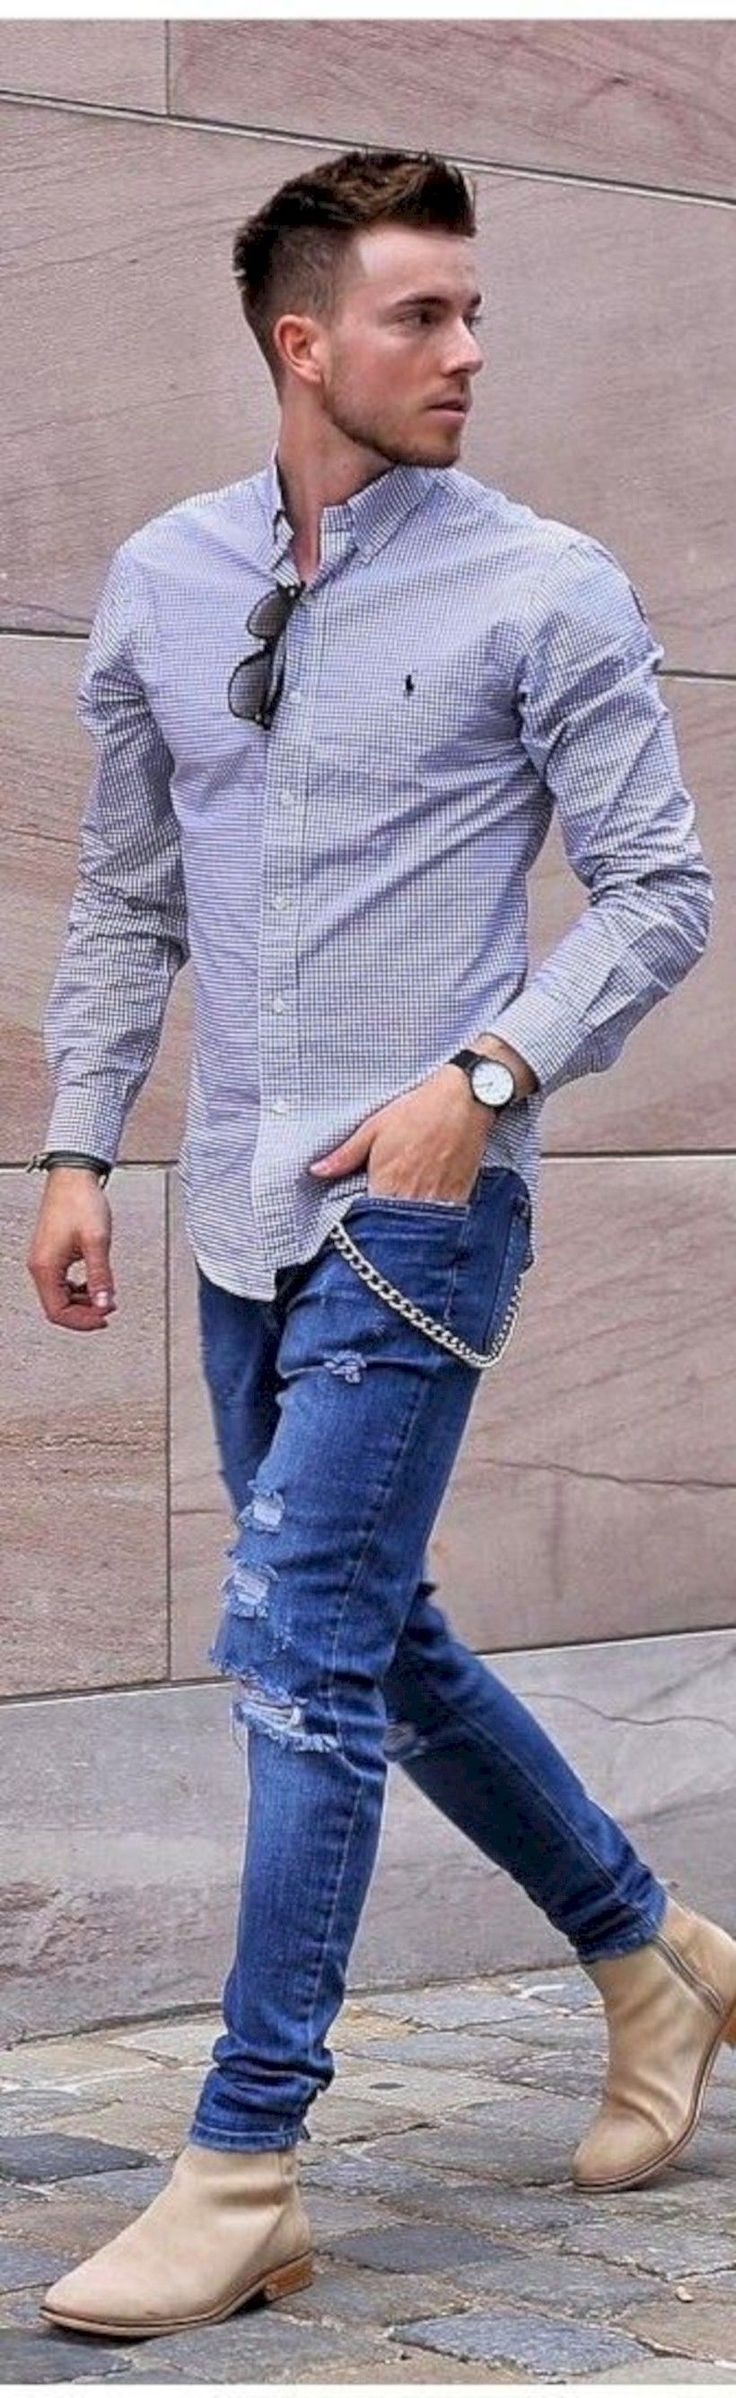 awesome 36 Men's Fashion Casual Jeans Outfits https://attirepin.com/2018/02/18/36-mens-fashion-casual-jeans-outfits/ #men'scasualoutfits #casualoutfits